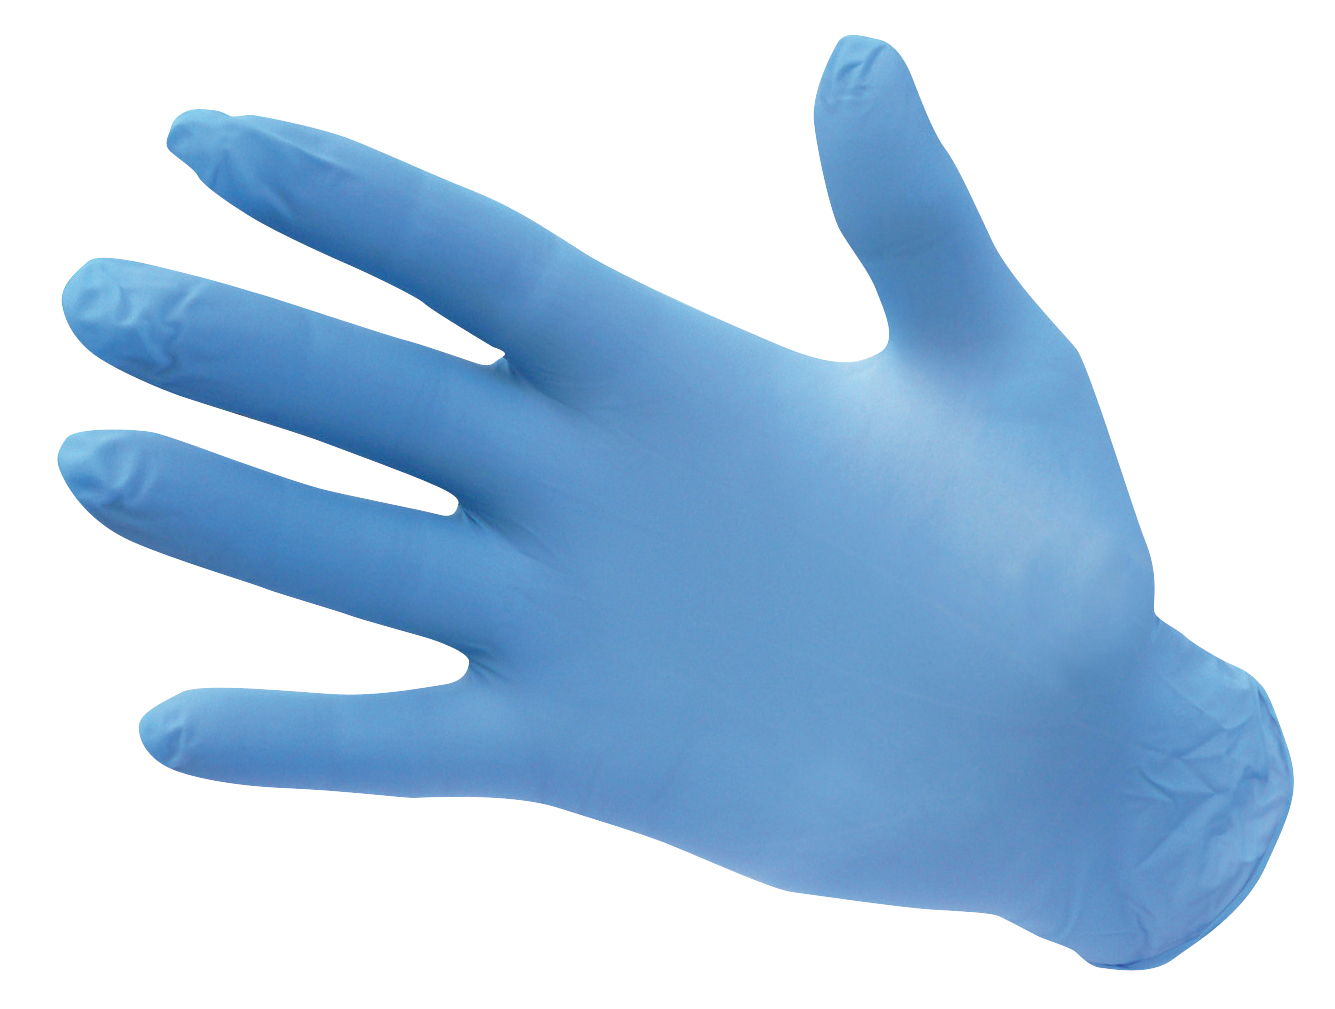 Picture of Portwest Powder Free Nitrile Disposable Glove